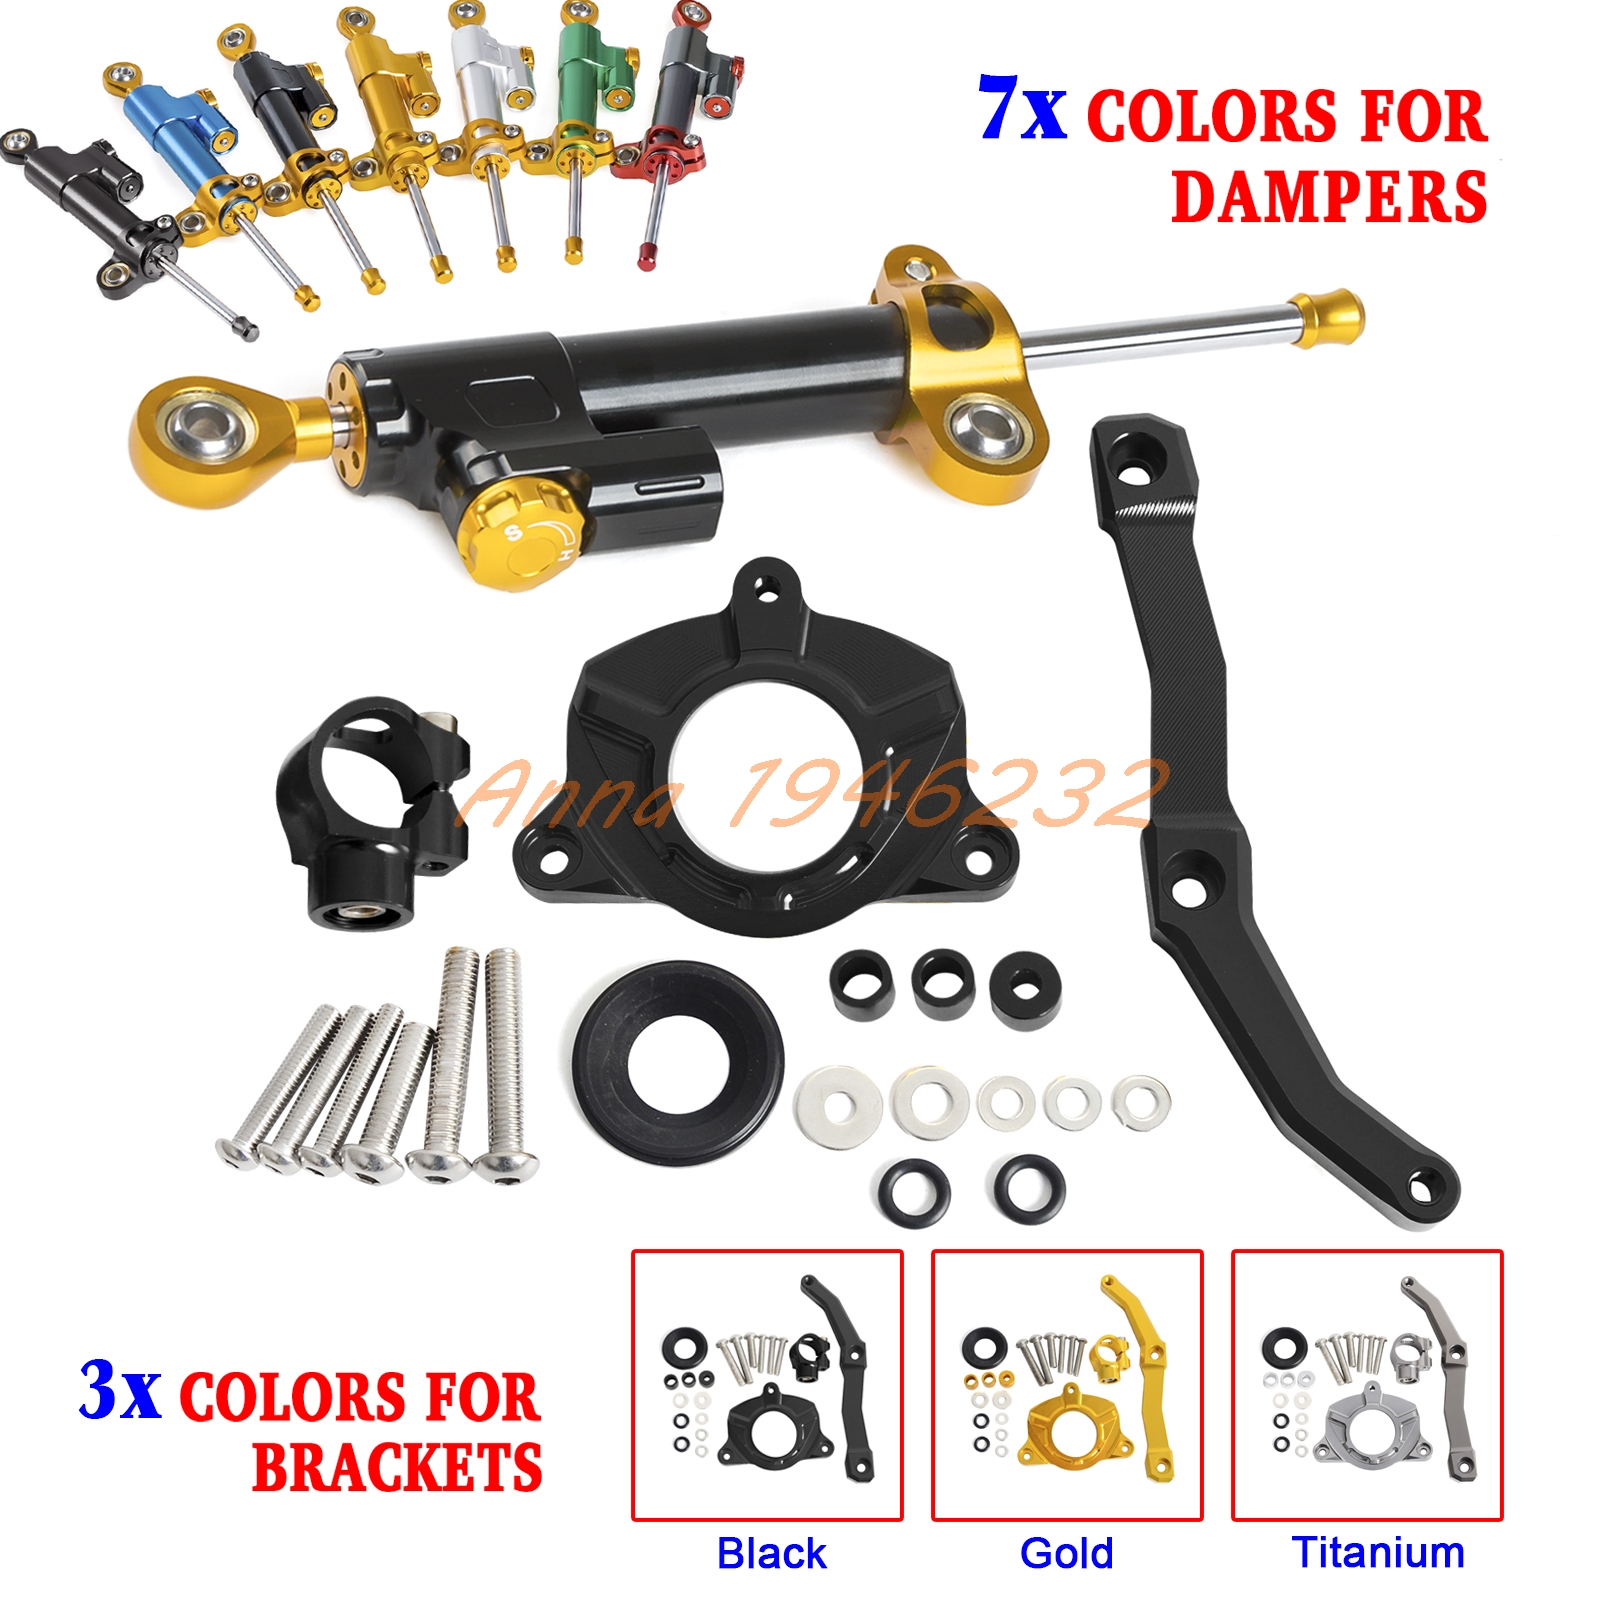 Motorcycle CNC Steering Damper Stabilizer & Bracket for Kawasaki Z1000 2010 2012 2013 2013